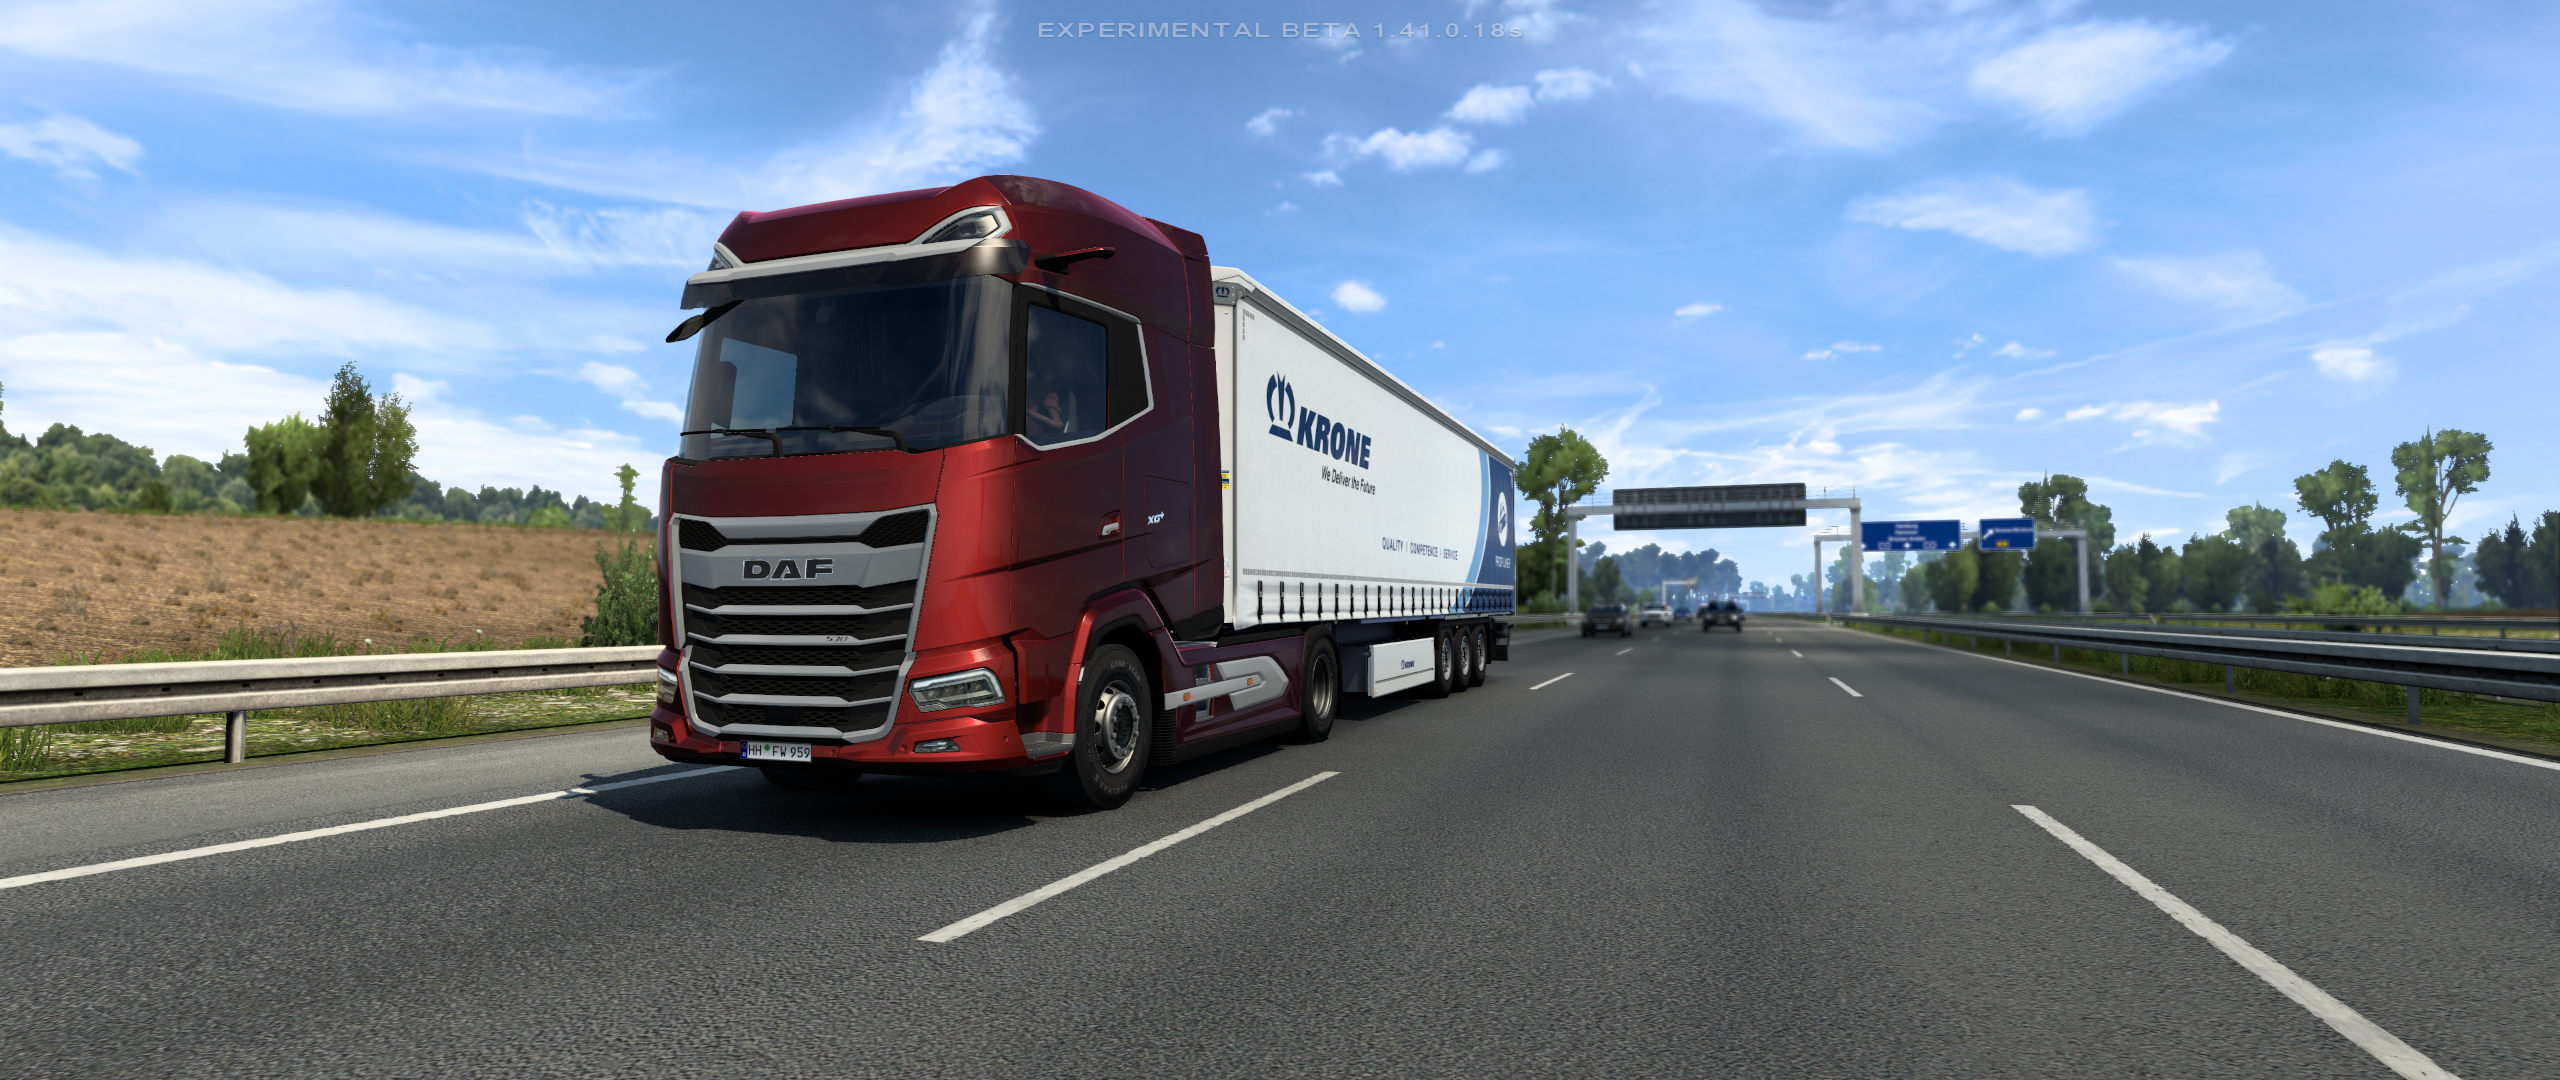 ets2_20210610_191246_00.png